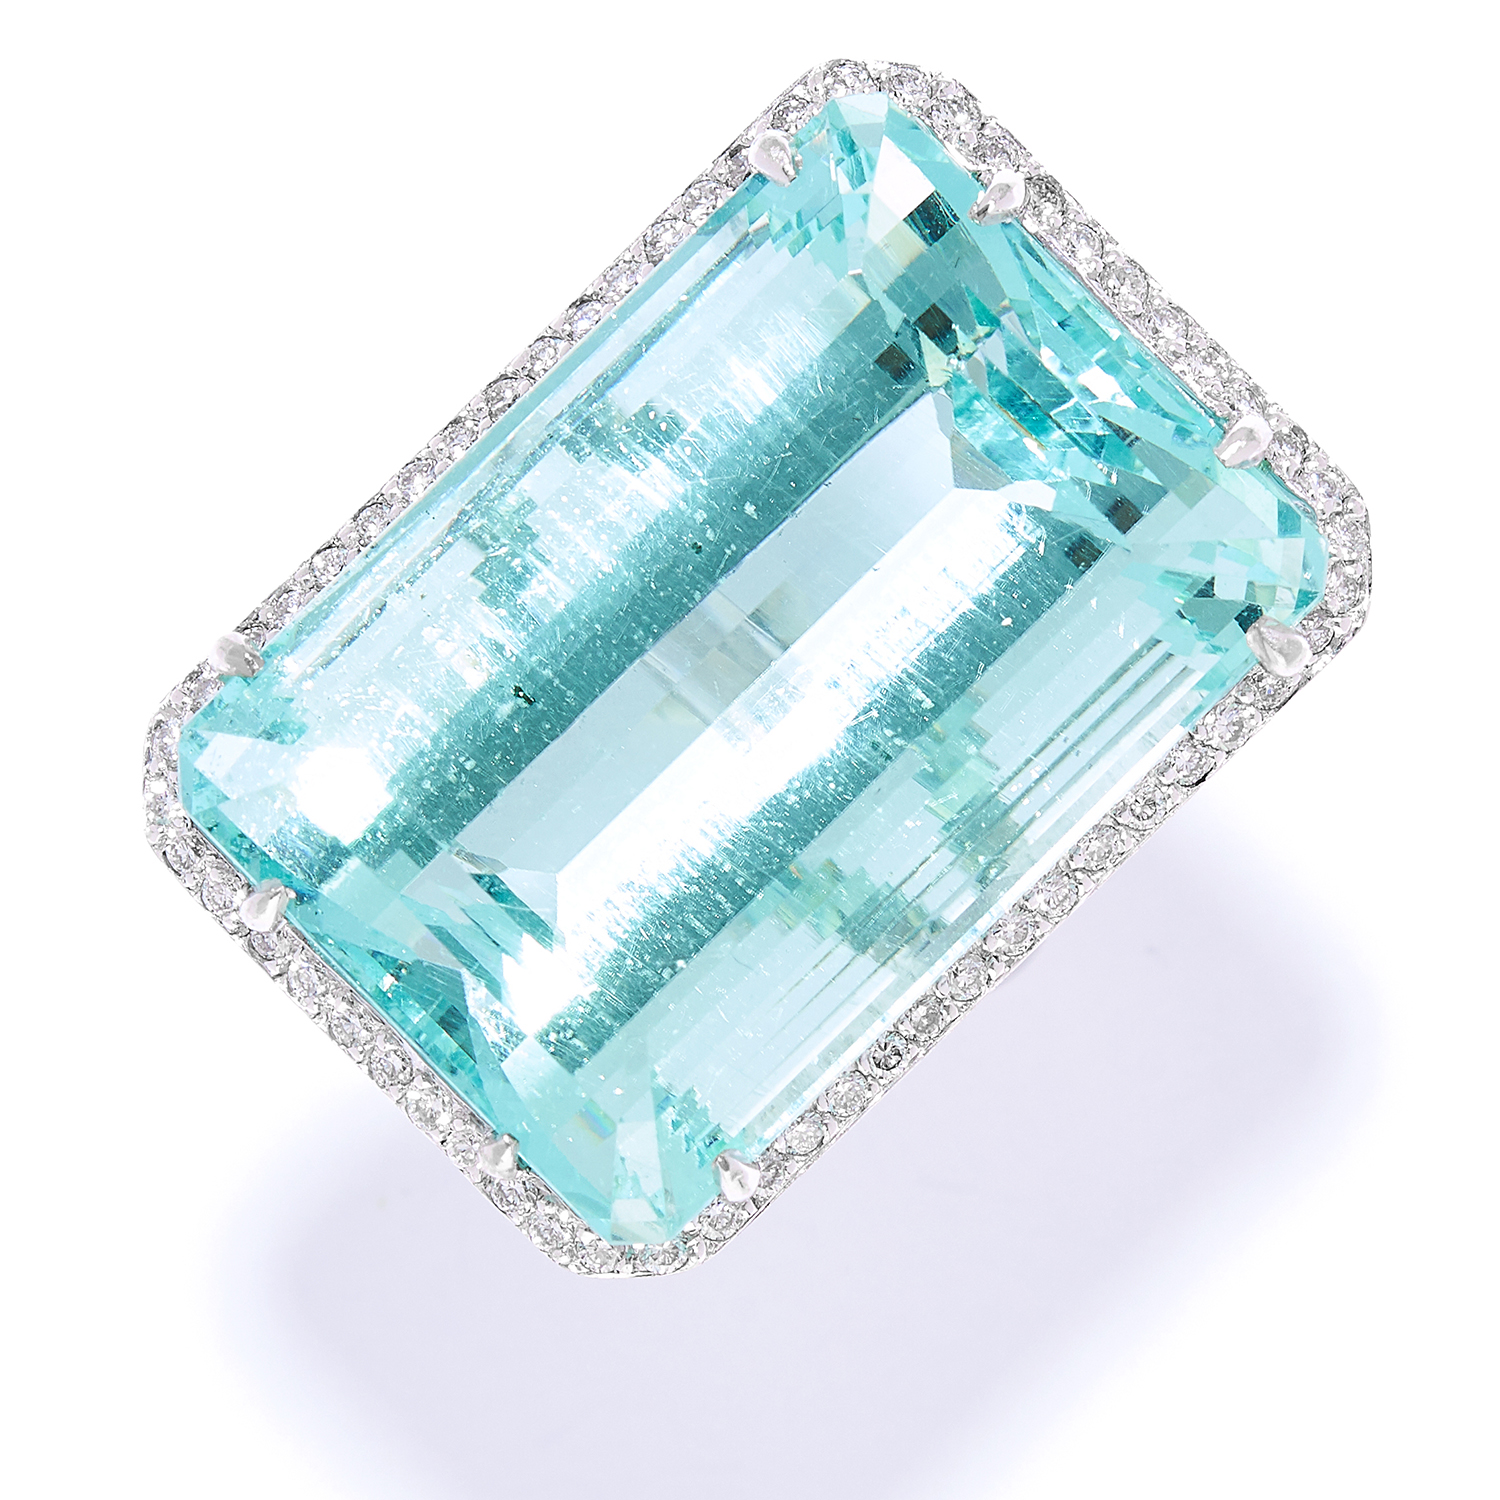 66.00 CARAT AQUAMARINE AND DIAMOND COCKTAIL RING in 18ct white gold, set with an emerald cut